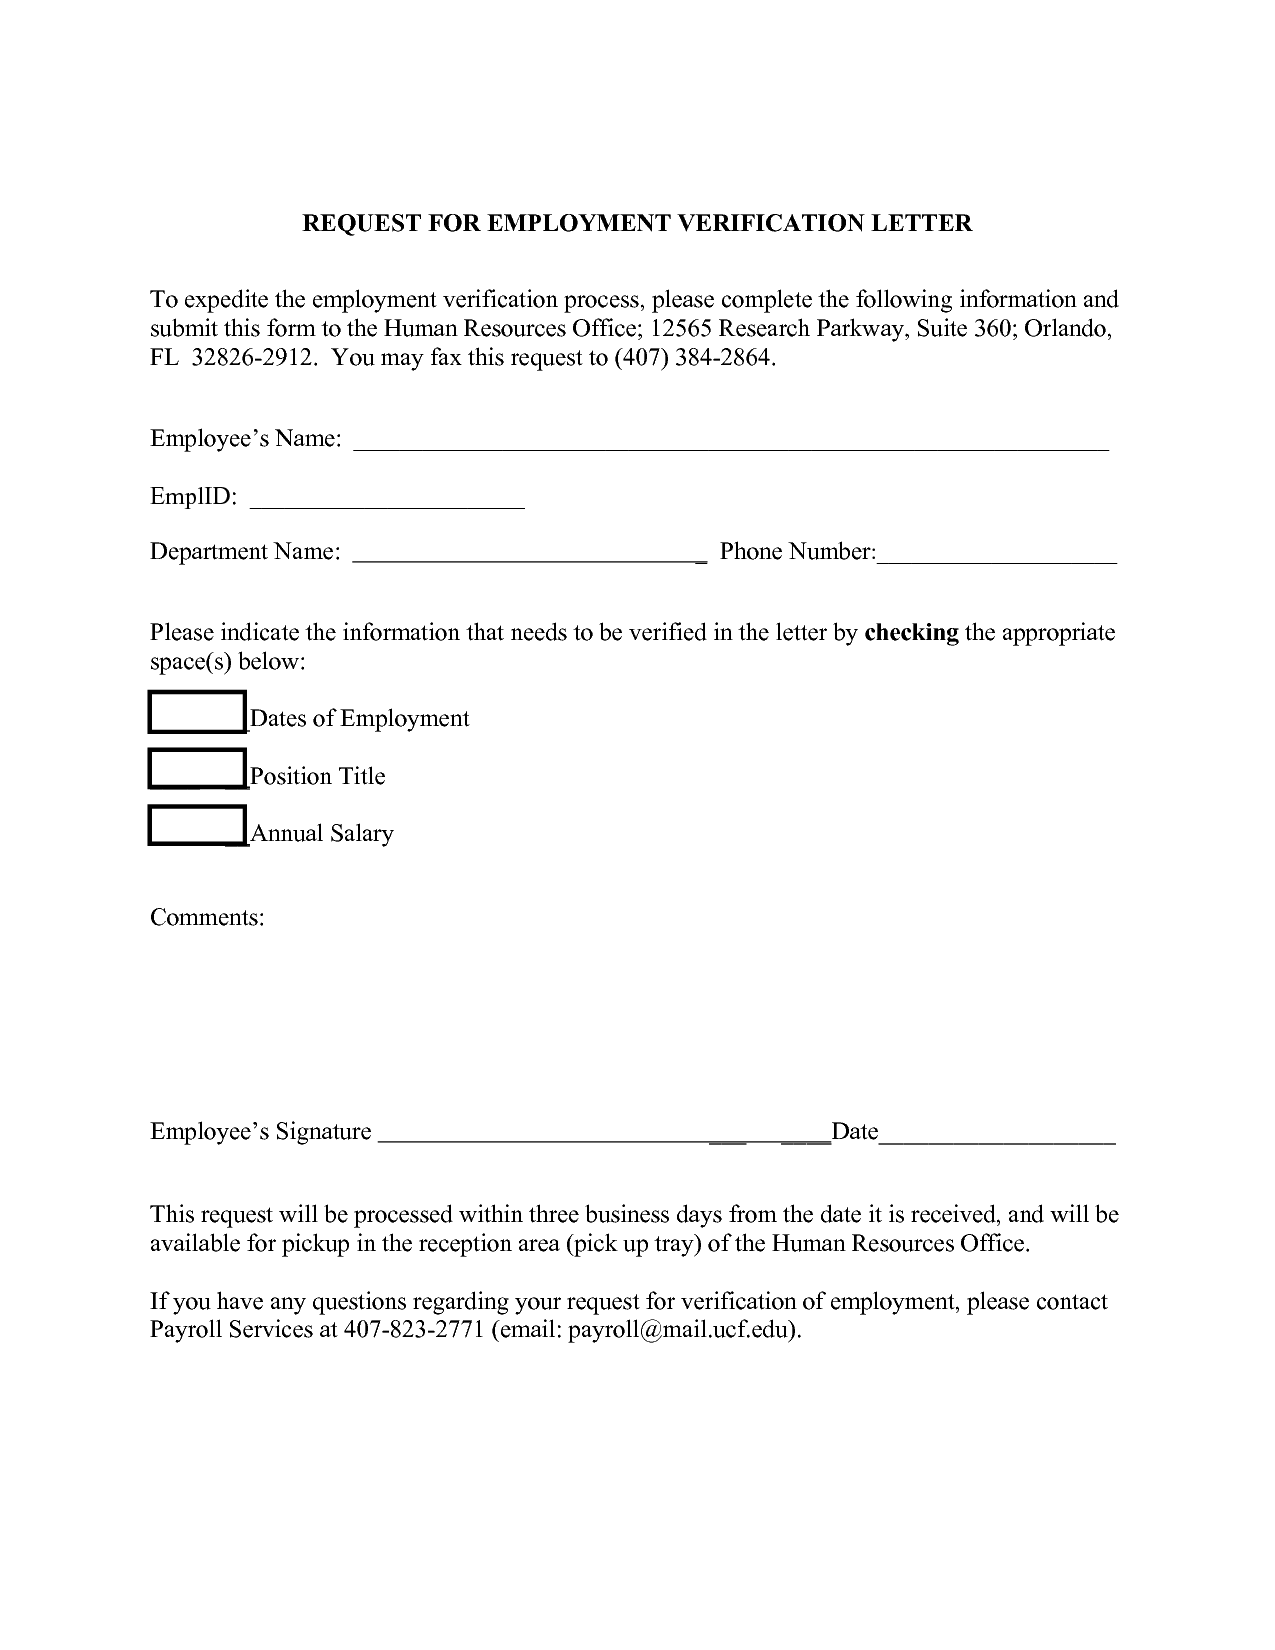 Request For Employment Verification Letter Sample from dailyroabox.com